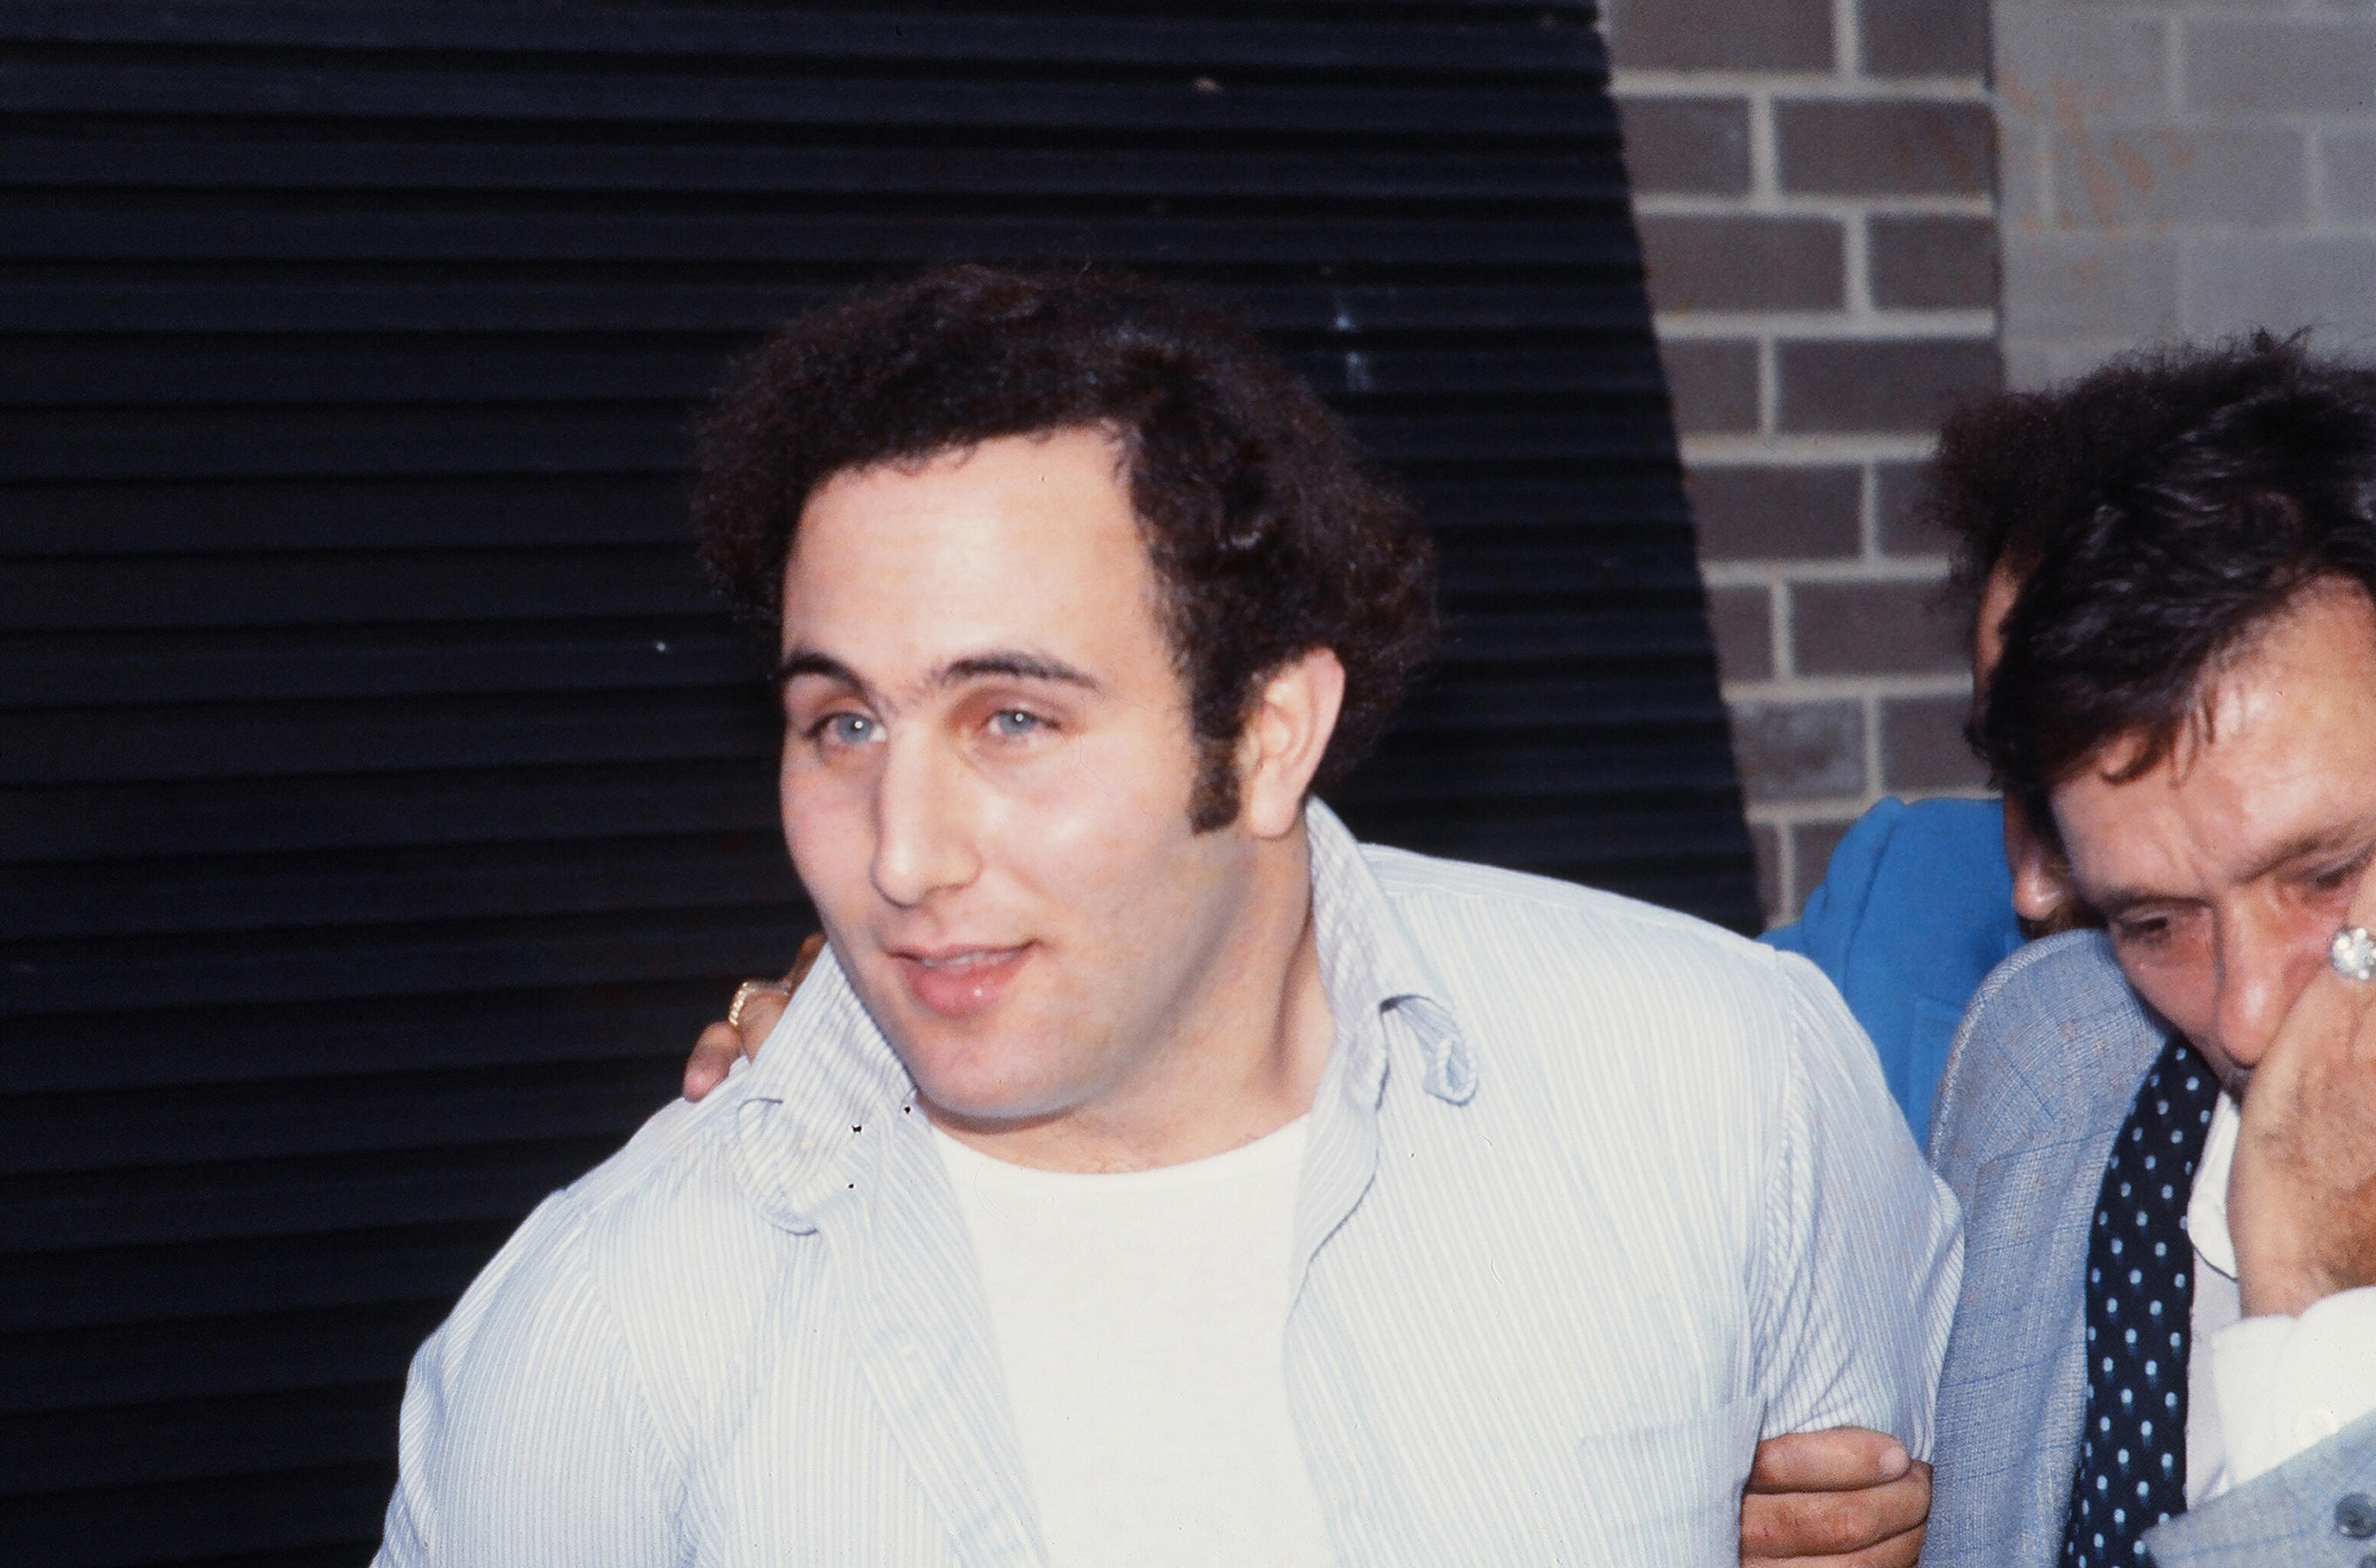 a look at the serial killer david berkowitz Serial killer david berkowitz, known as son of sam is shown during feb  in  august of 1977, the world got a glimpse at the son of sam, david.